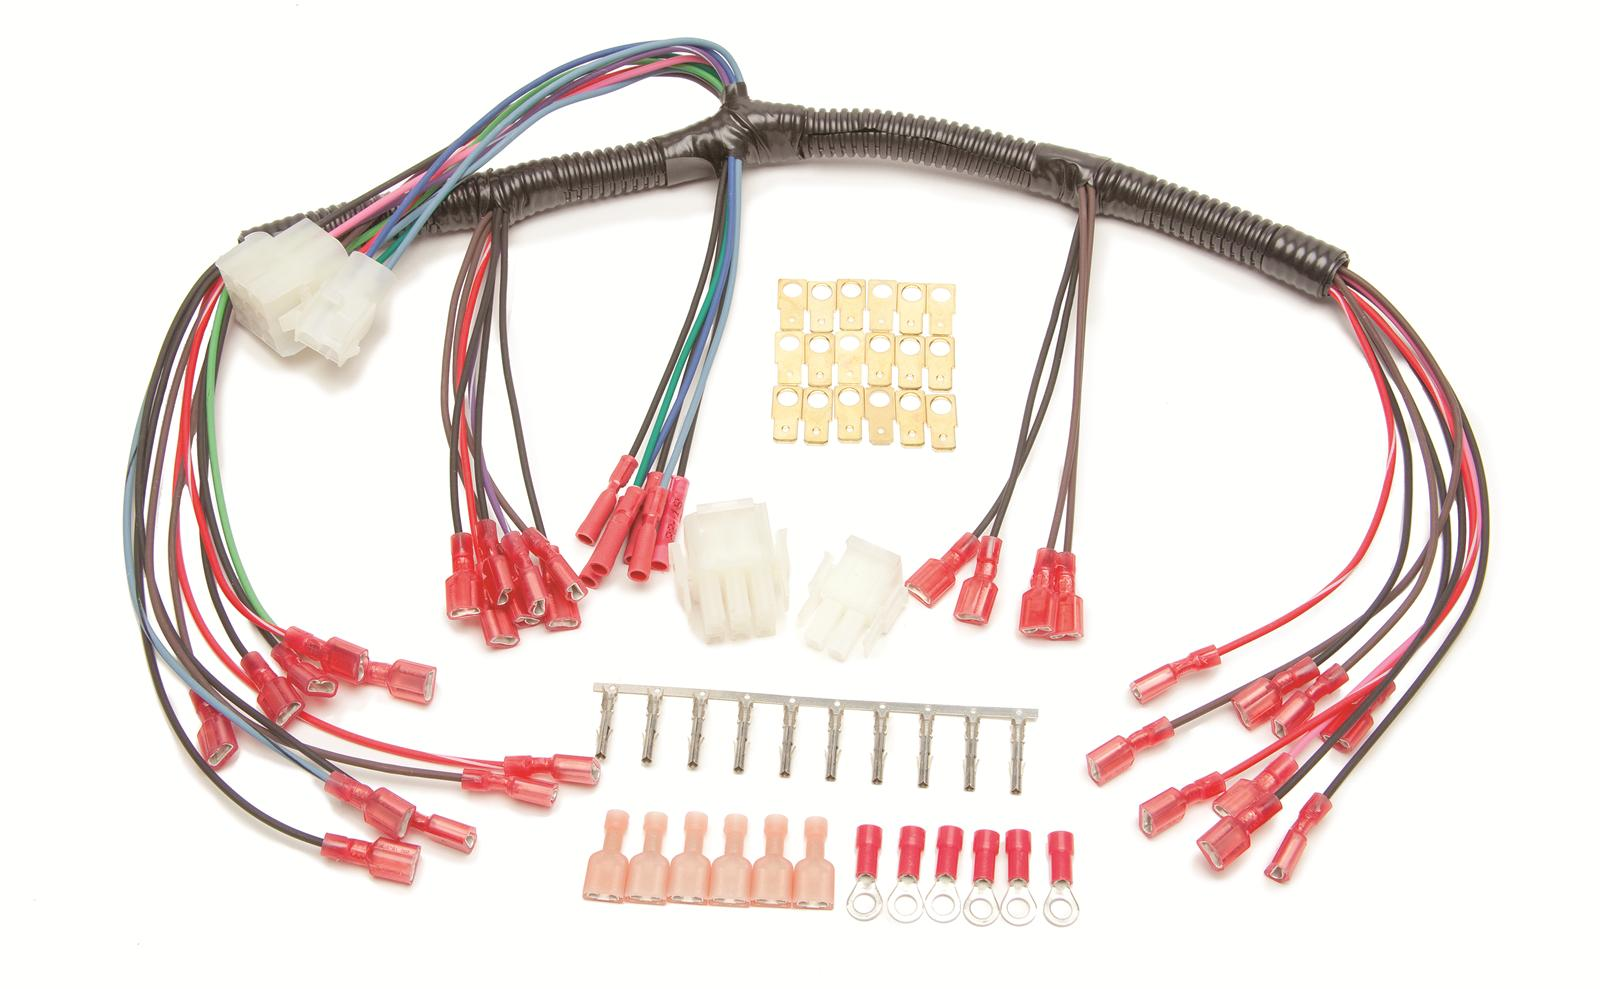 painless performance universal gauge harnesses  painless performance universal gauge harnesses 30301 shipping on orders over 99 at summit racing